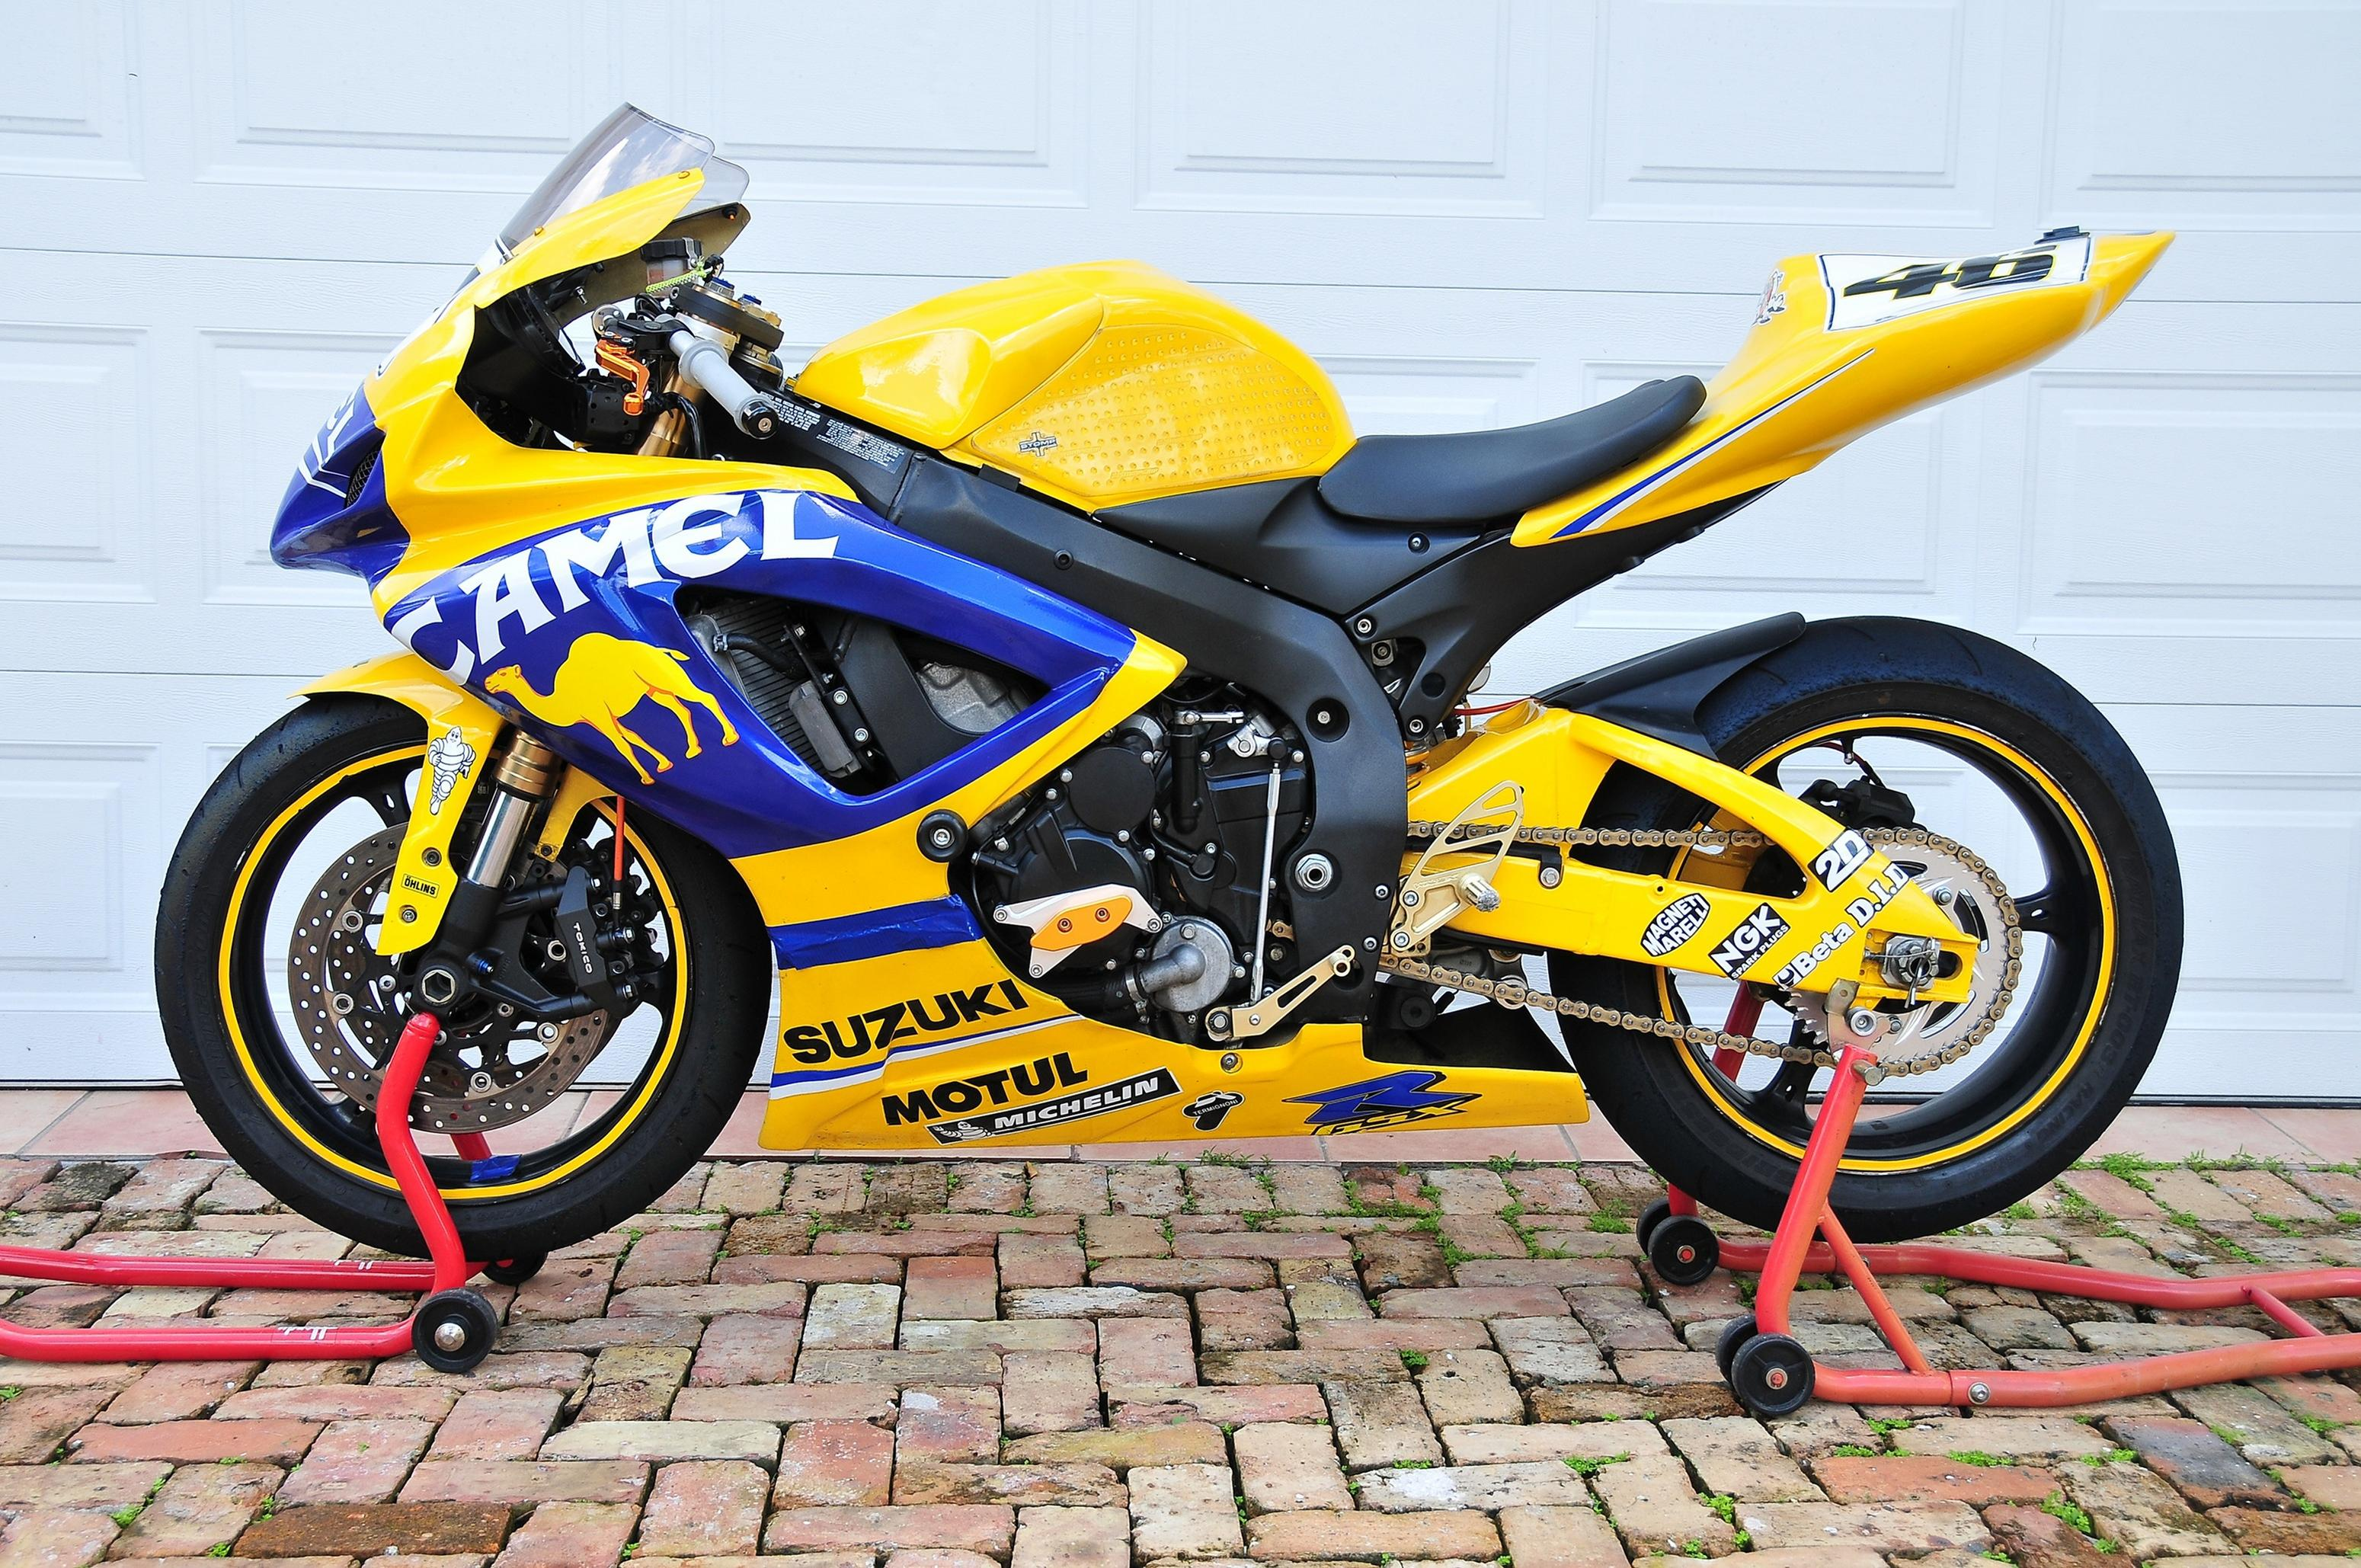 2006 suzuki gsxr 600 track clean title 6700 doral fl. Black Bedroom Furniture Sets. Home Design Ideas